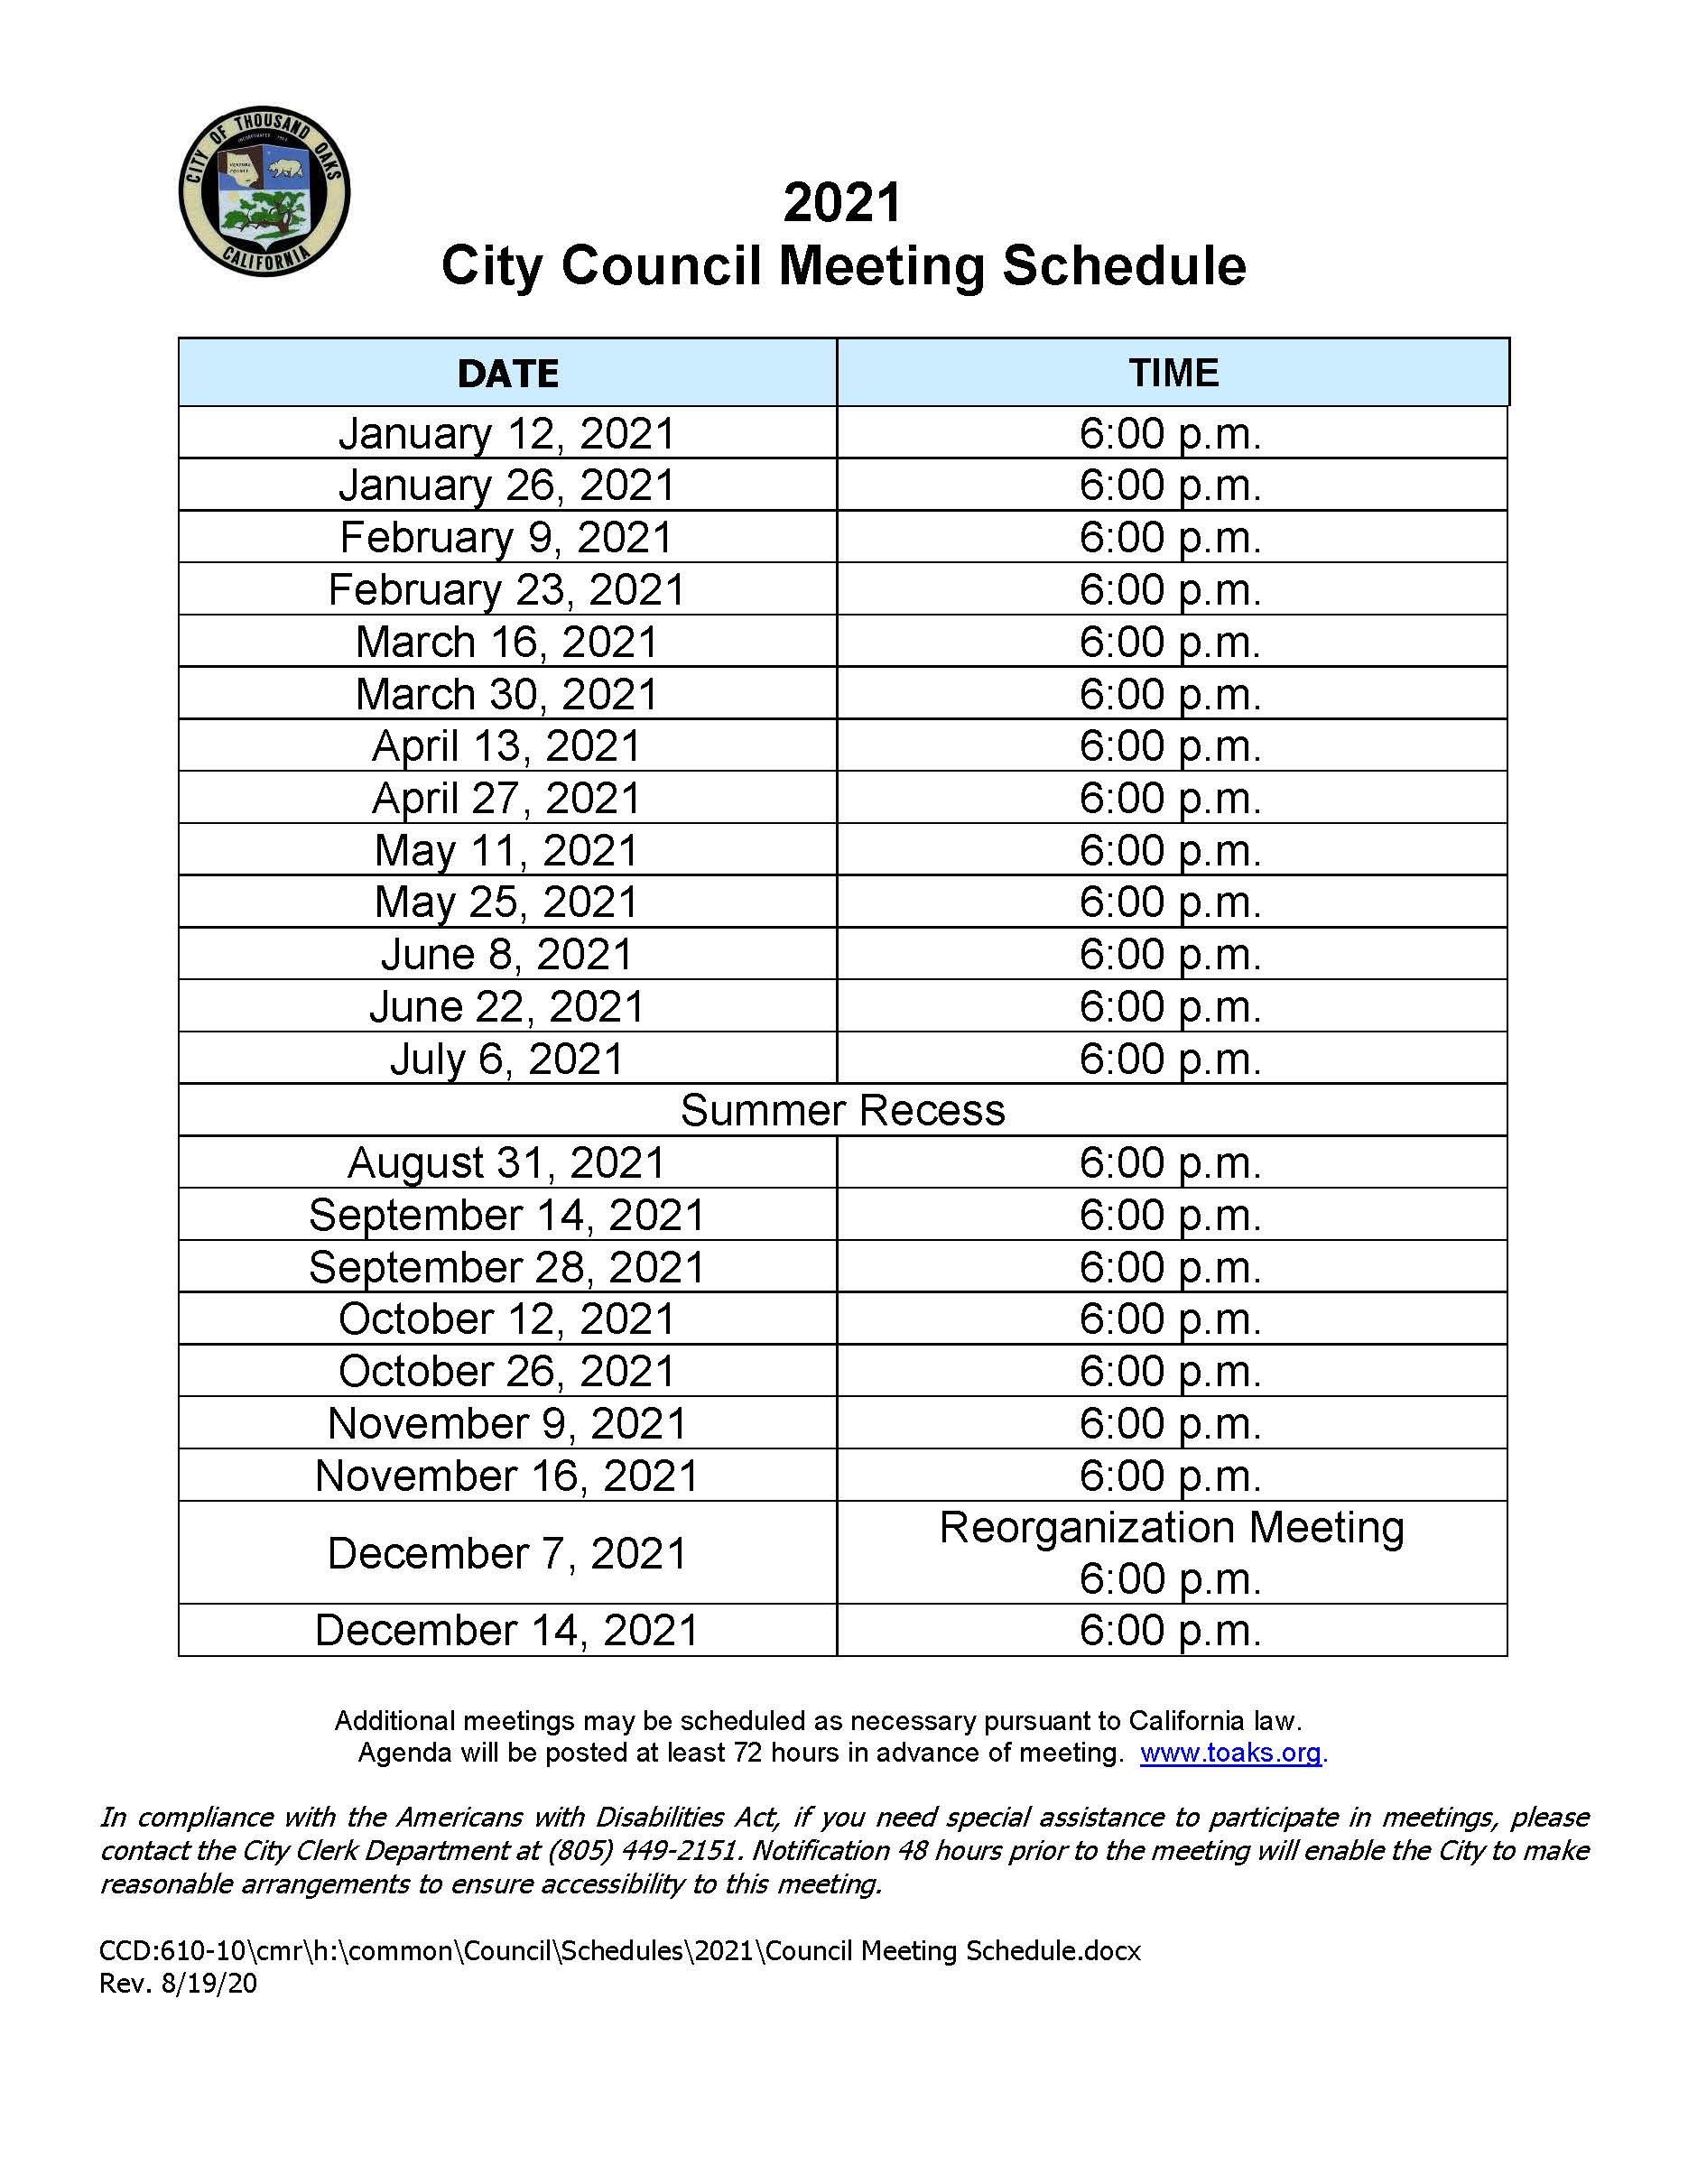 2021 Council Meeting Schedule